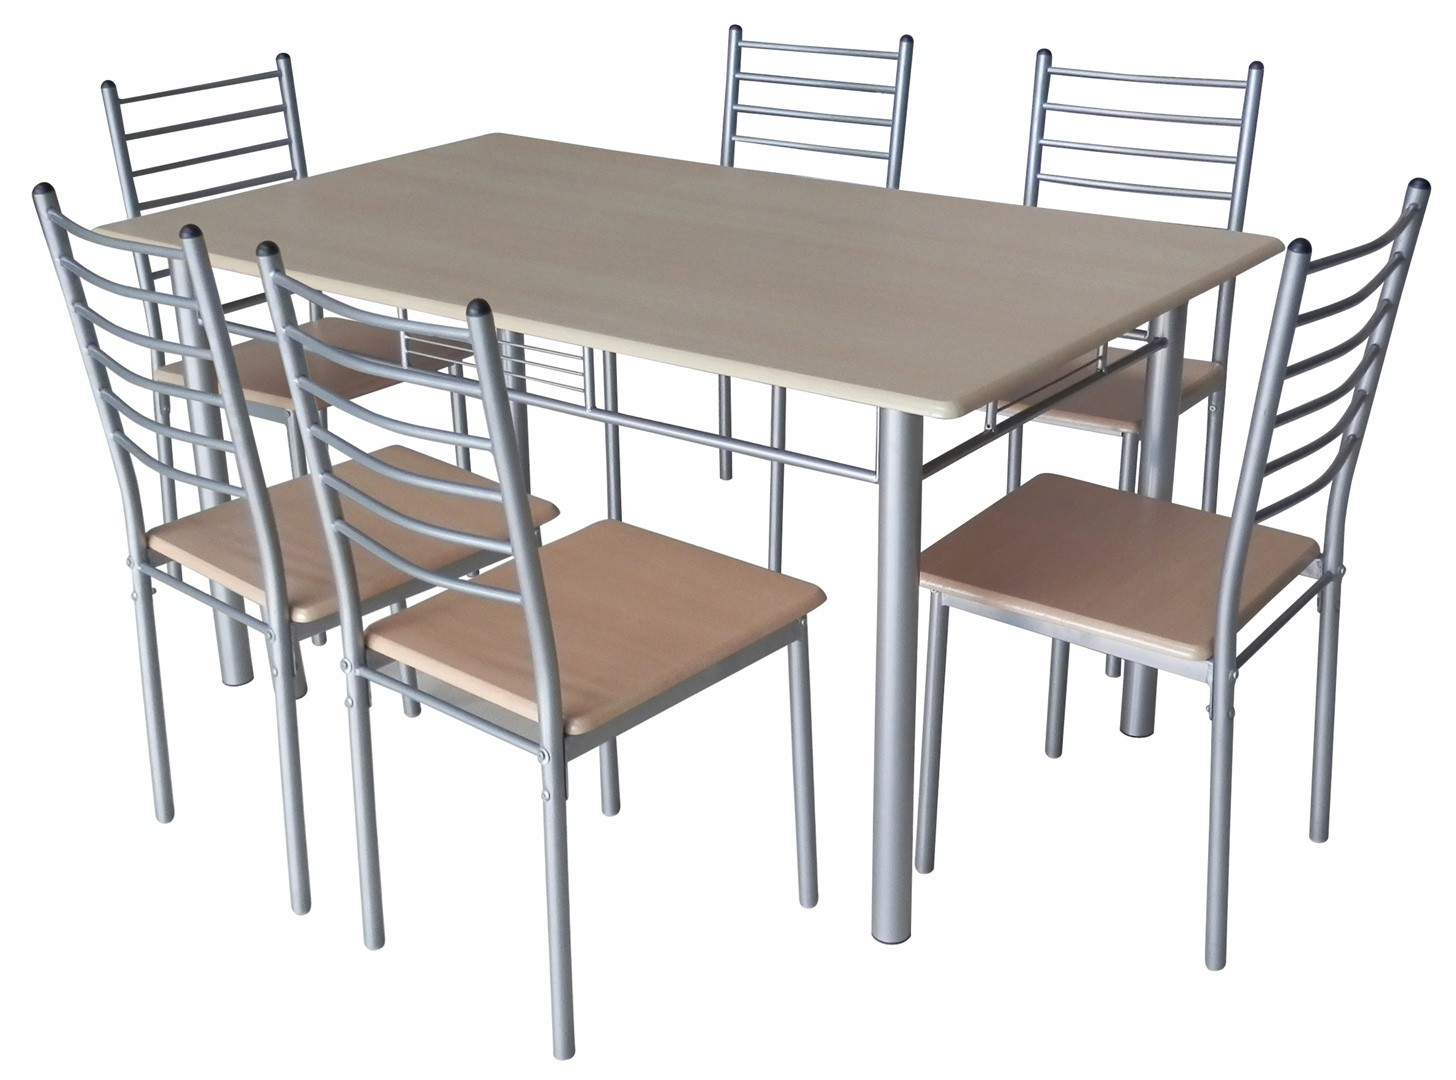 Ensemble table et chaises de cuisine but chaise id es for Chaise et table cuisine